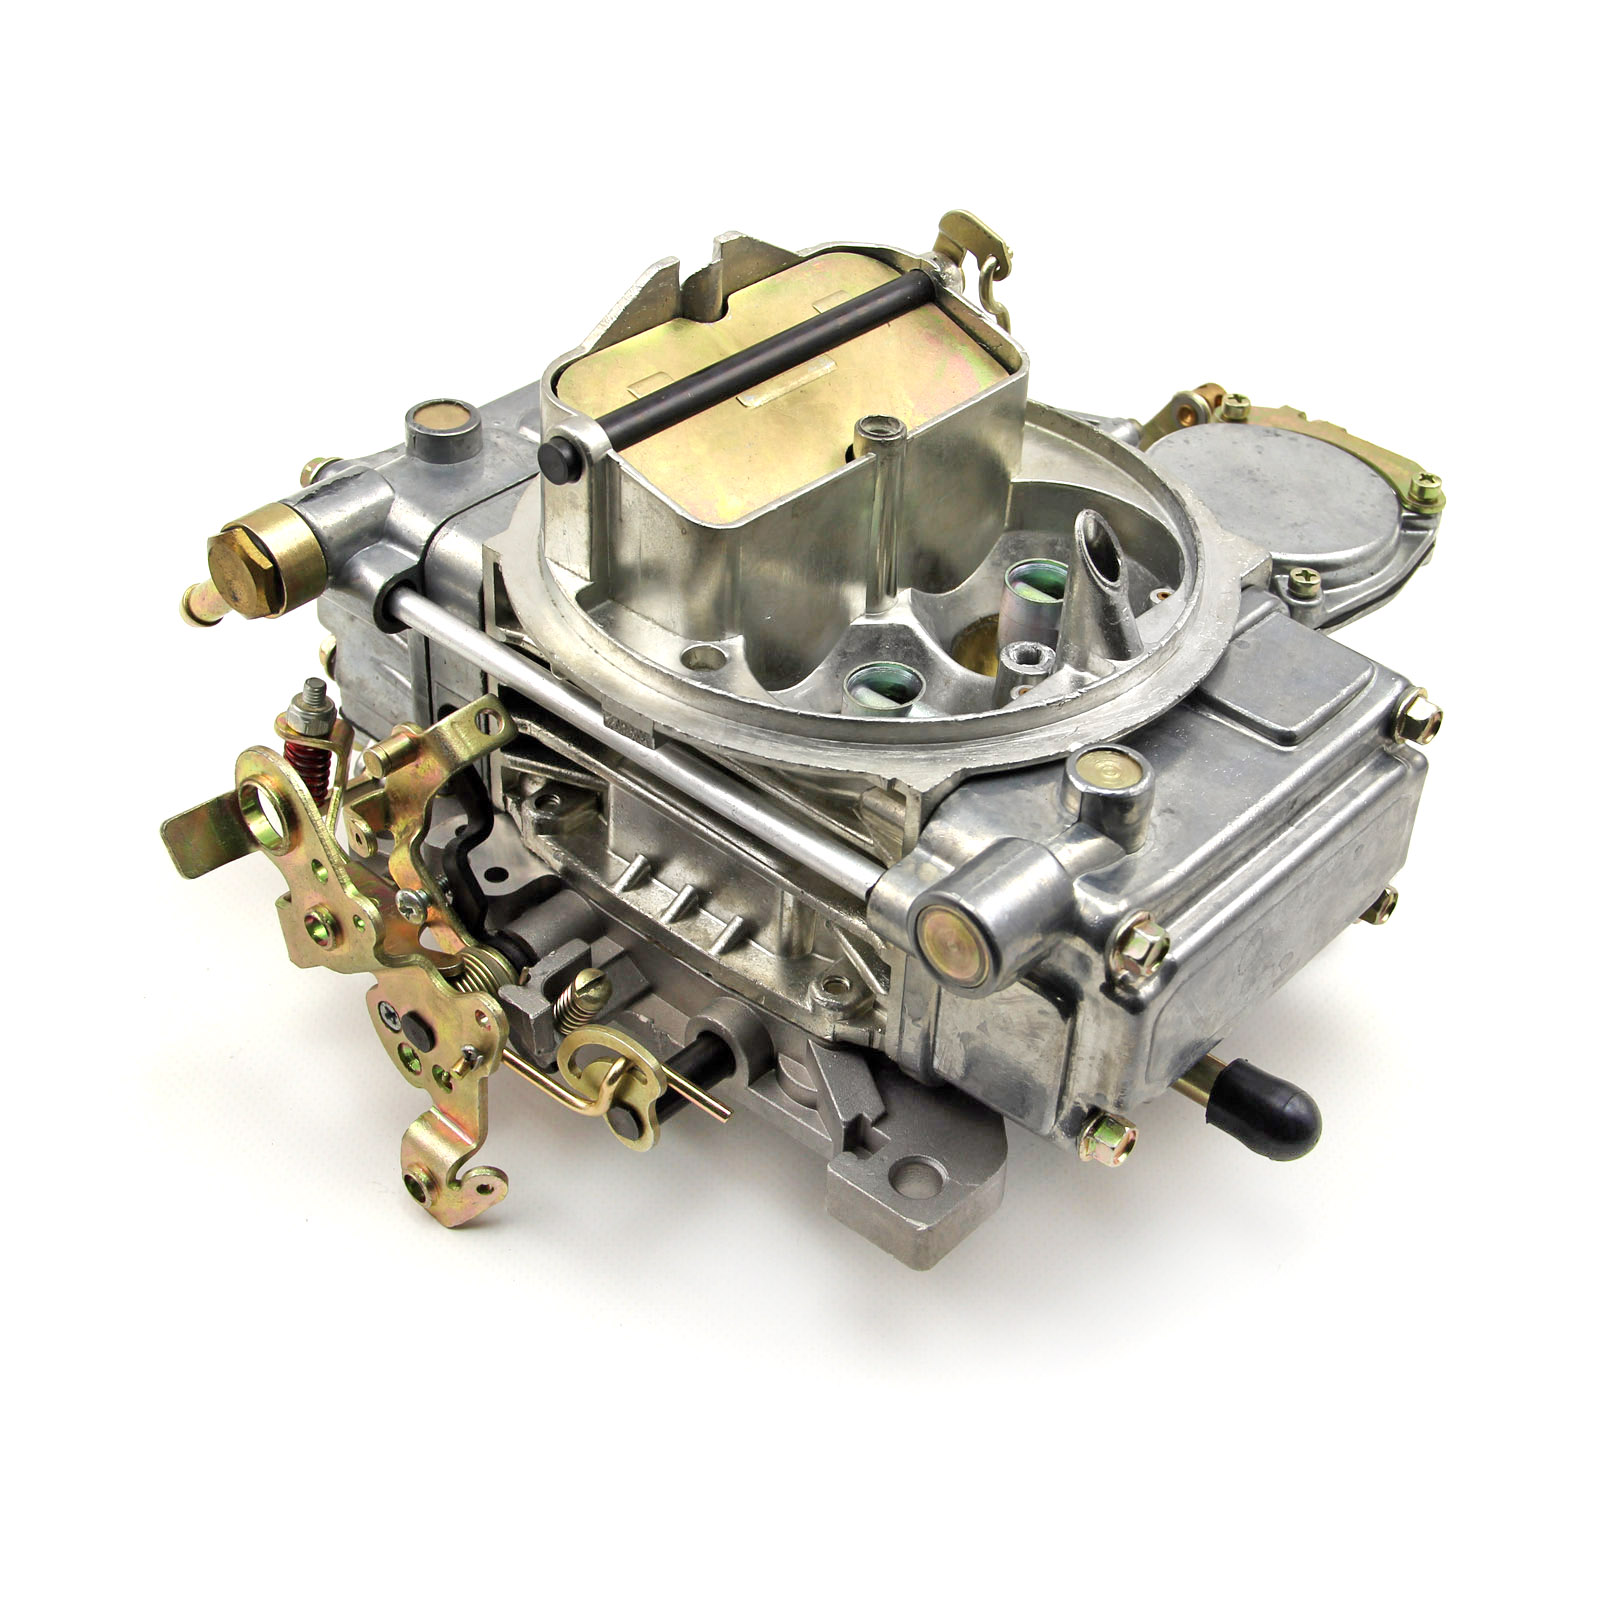 610 CFM Natural Finish 4-Bbl Vacuum Secondary Carburetor Built in USA